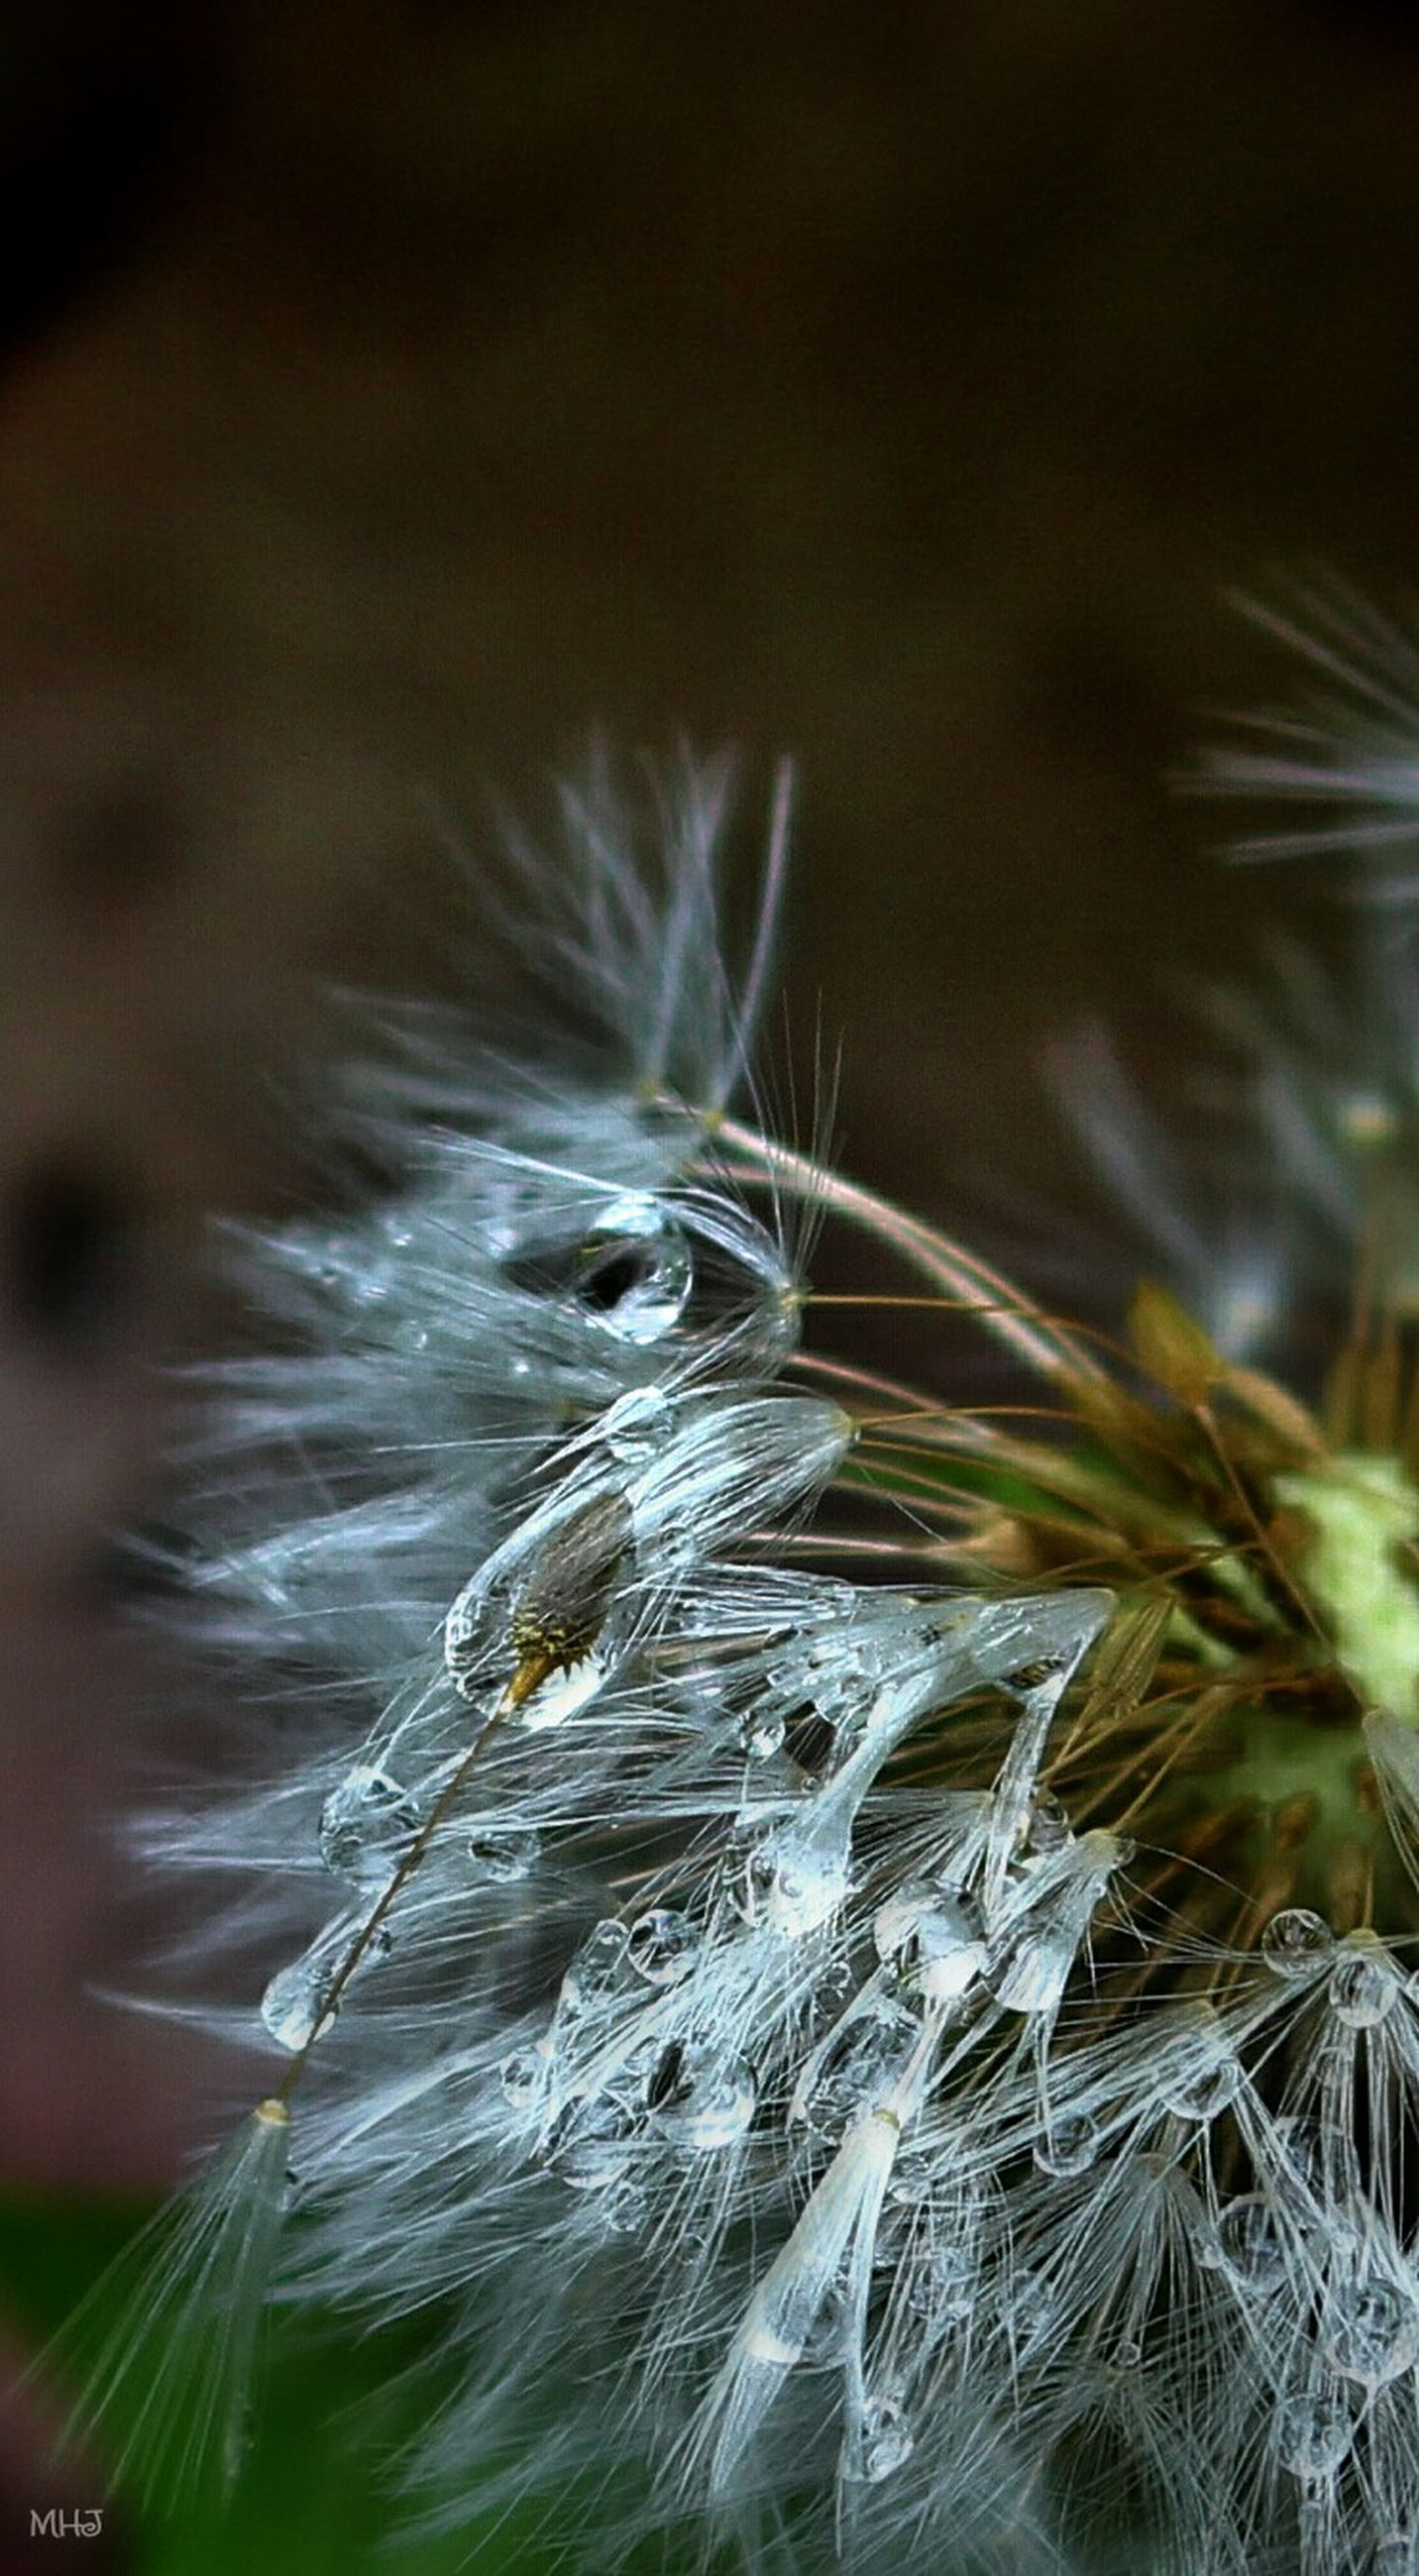 close-up, plant, growth, softness, nature, beauty in nature, fragility, focus on foreground, dandelion, day, outdoors, tranquility, scenics, freshness, uncultivated, green color, studio shot, green, no people